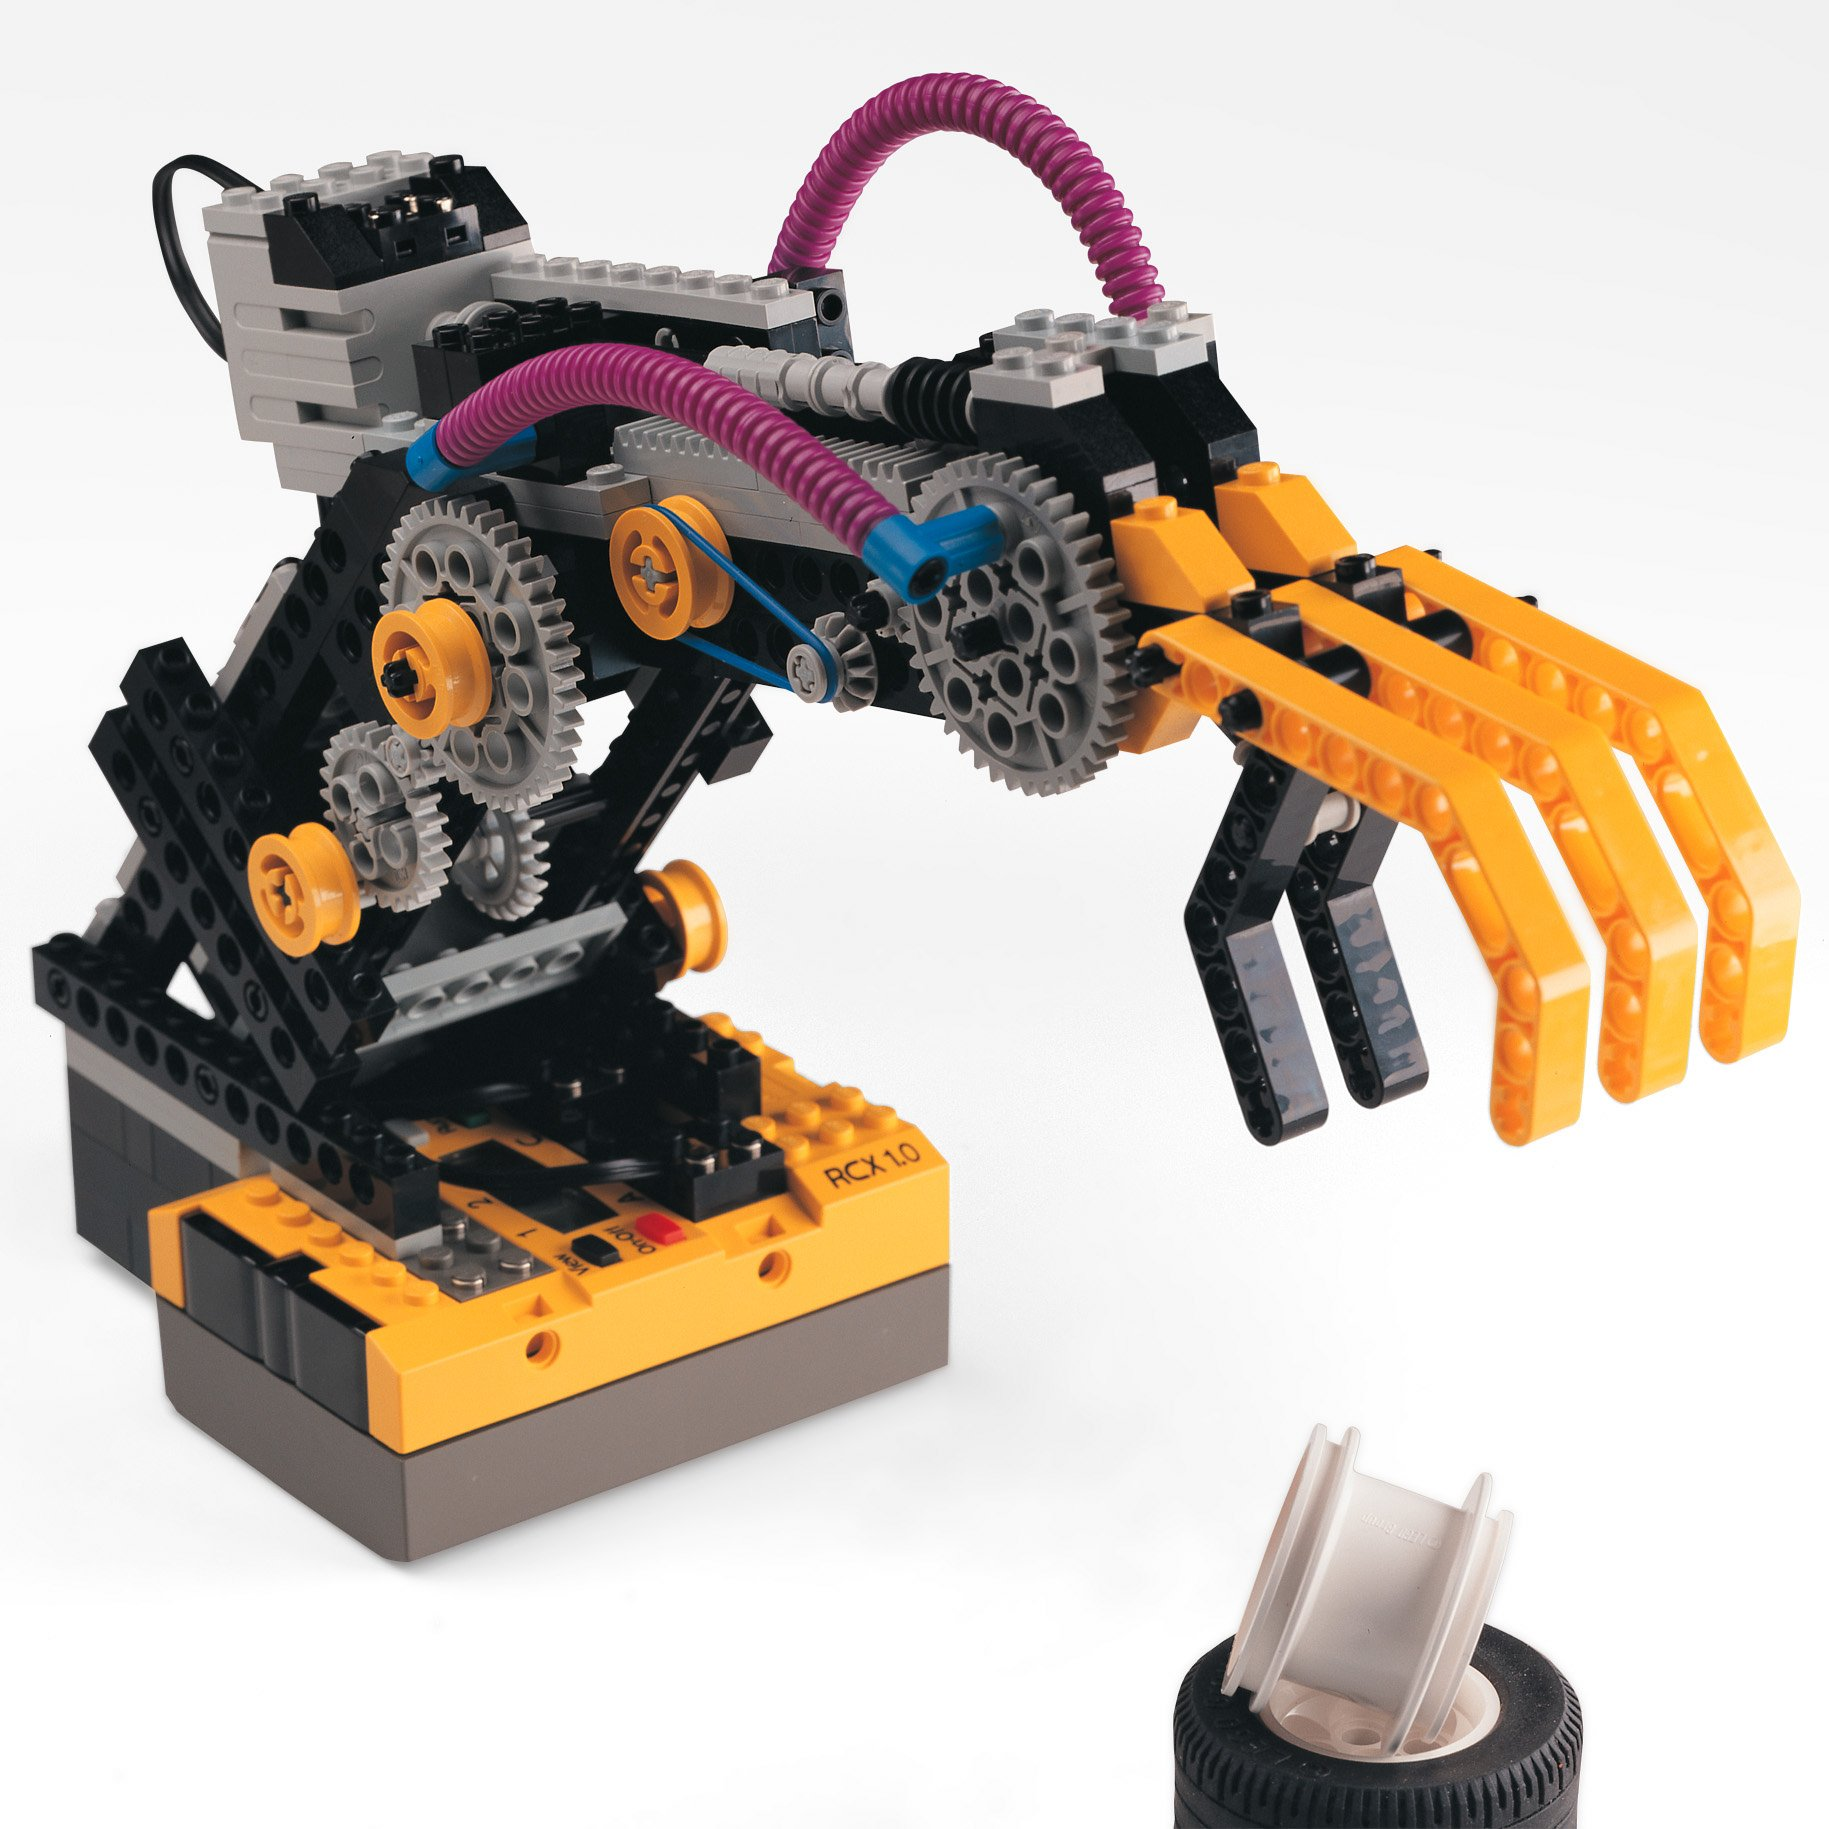 LEGO Mindstorms Robotic Invention 2.0